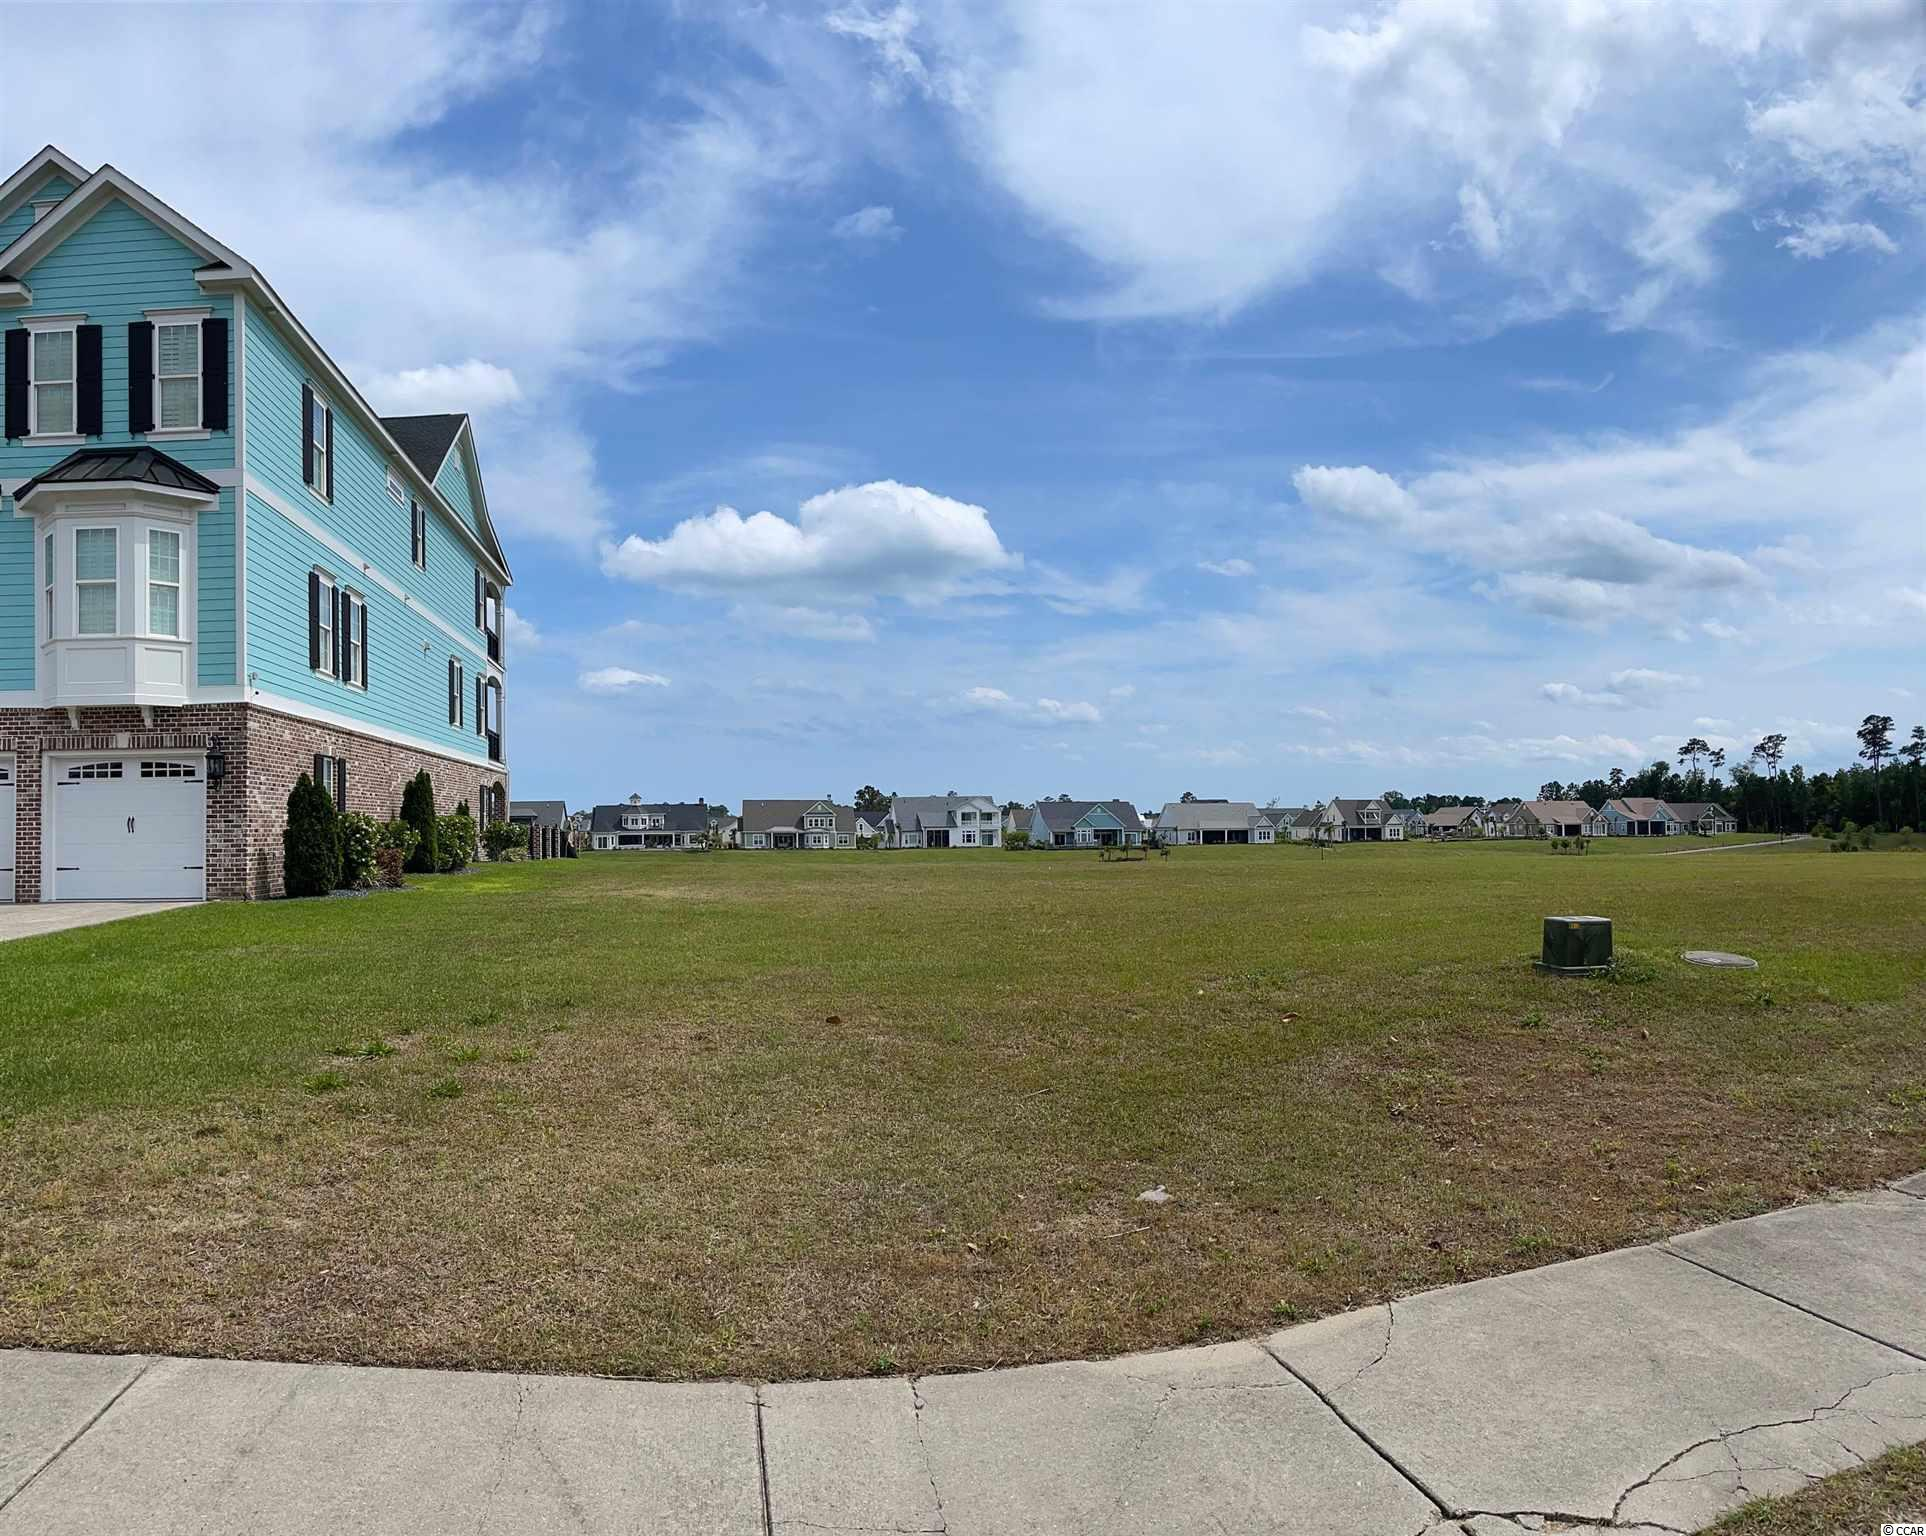 Take advantage of living in one of the best neighborhoods on the waterway in Myrtle Beach.  The Battery on the Waterway is close to schools, restaurants, the beach, the ymca, nearby bike amenities like The HULK mountain bike park, and much more.